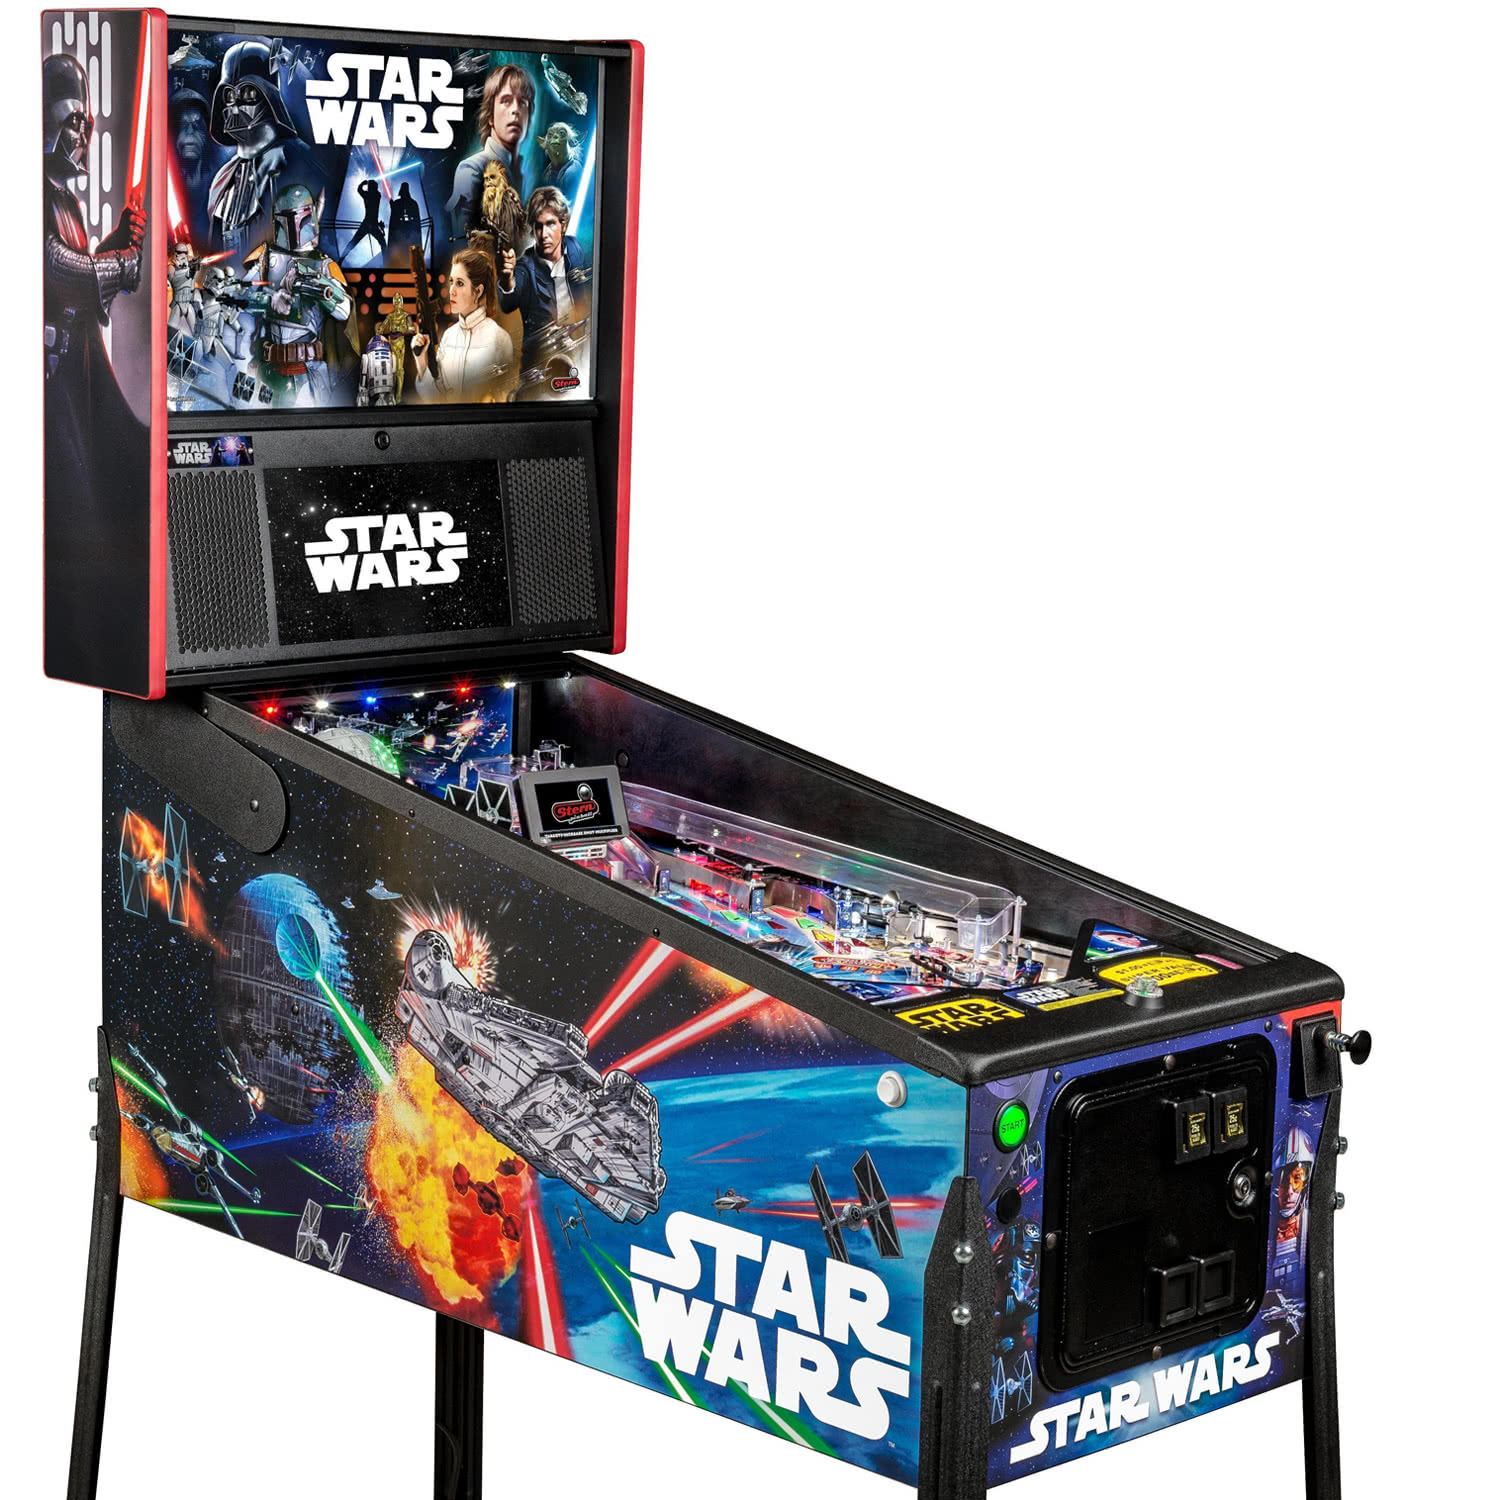 10 Games Like Star Wars Pinball for Android – Games Like